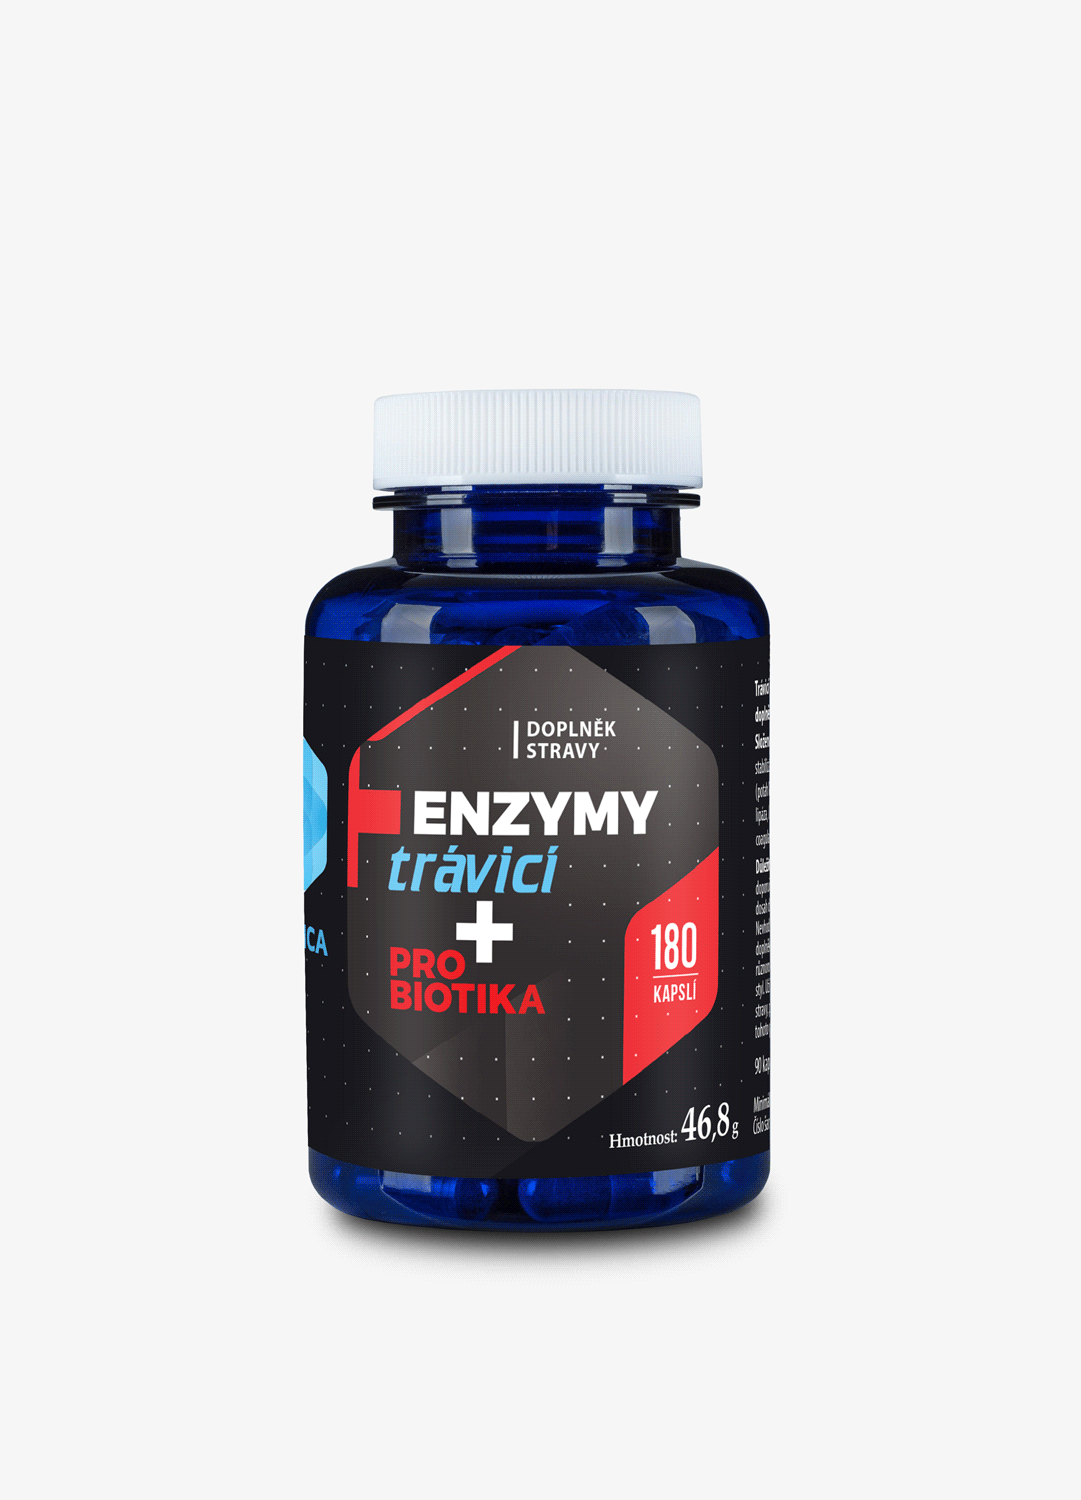 Travici Enzymy 150 mg 180 cps s probitiky